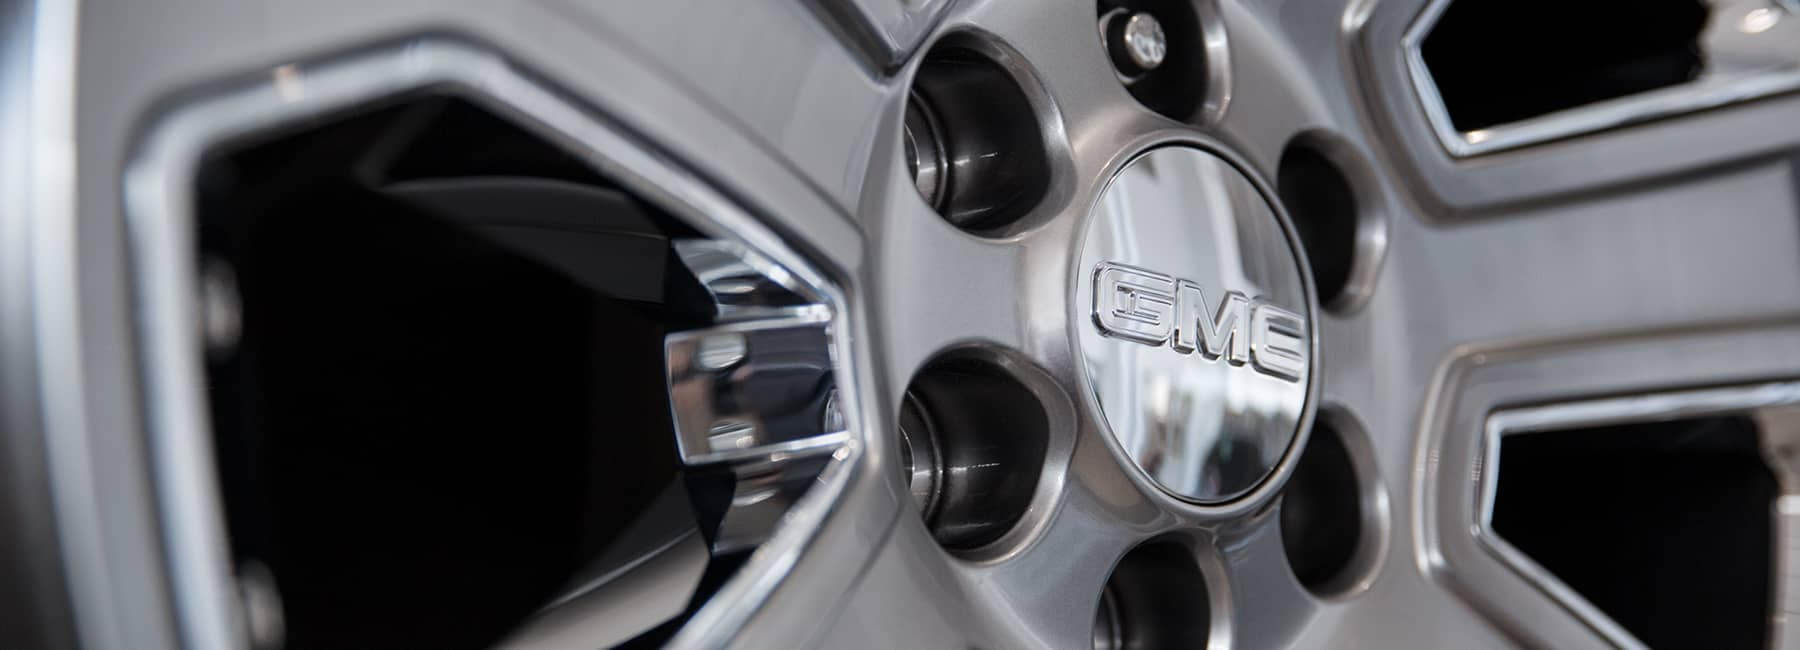 GMC Rim Service and Parts